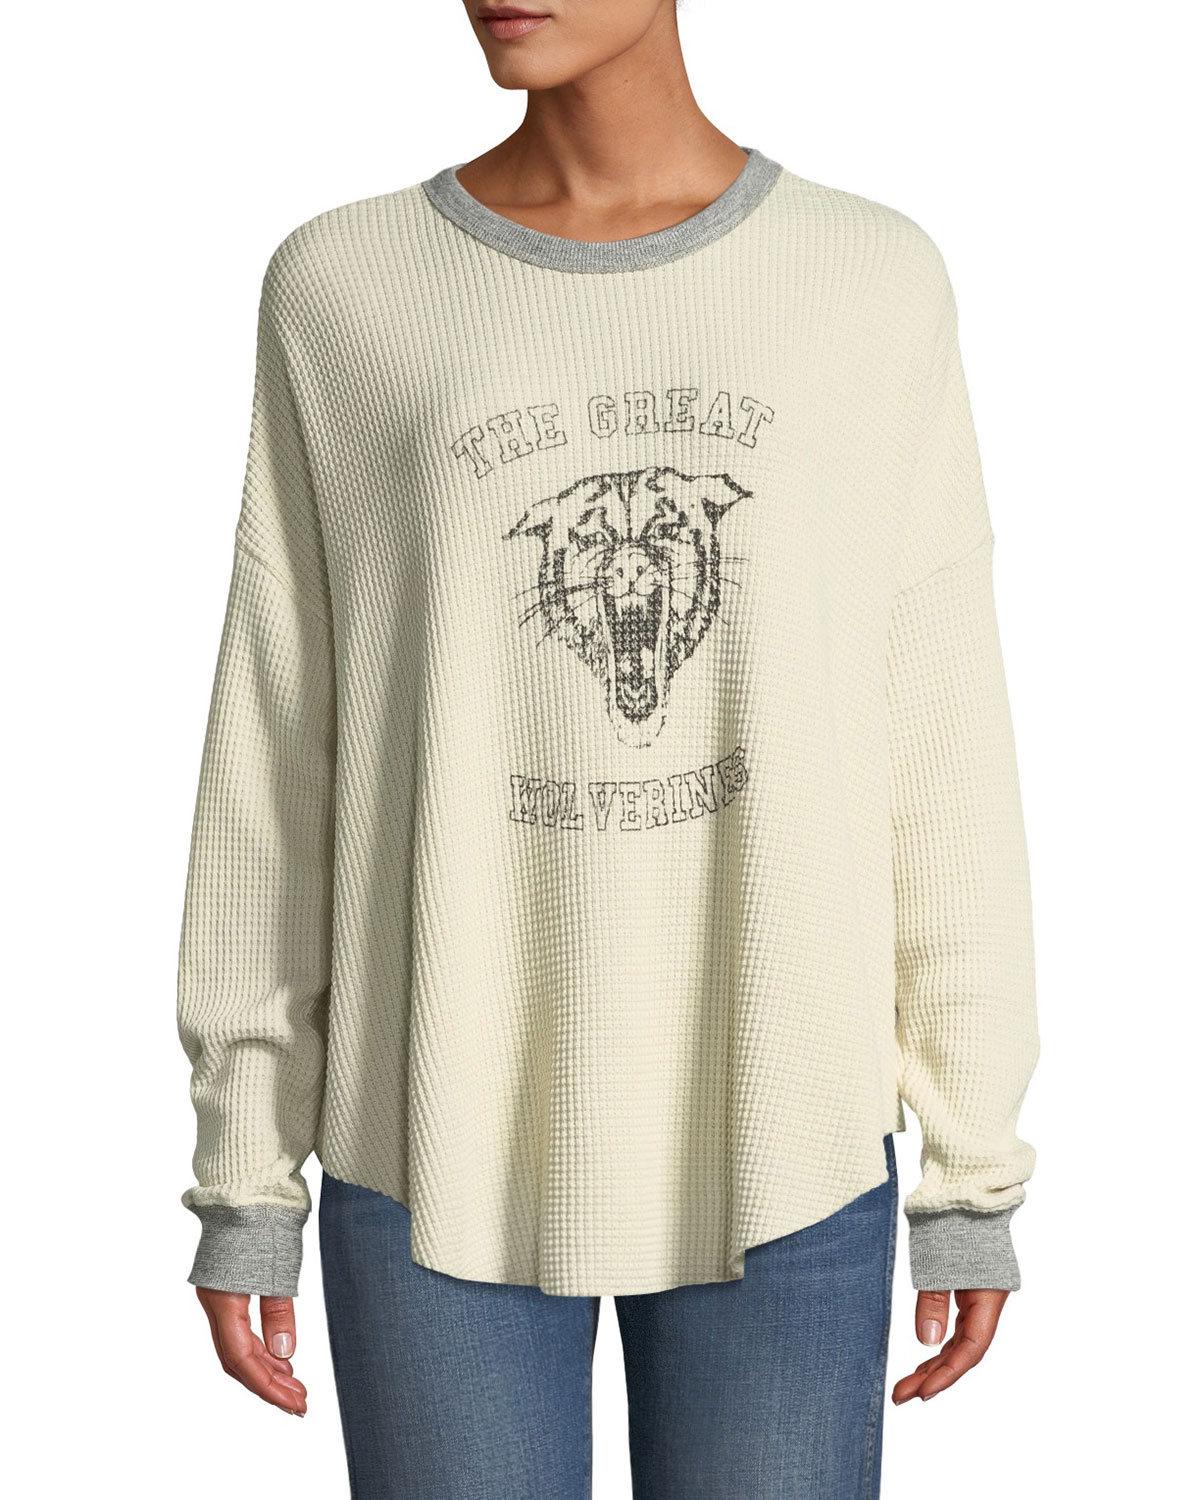 THE GREAT The Circle Thermal Graphic Long-Sleeve Sweater in White Pattern